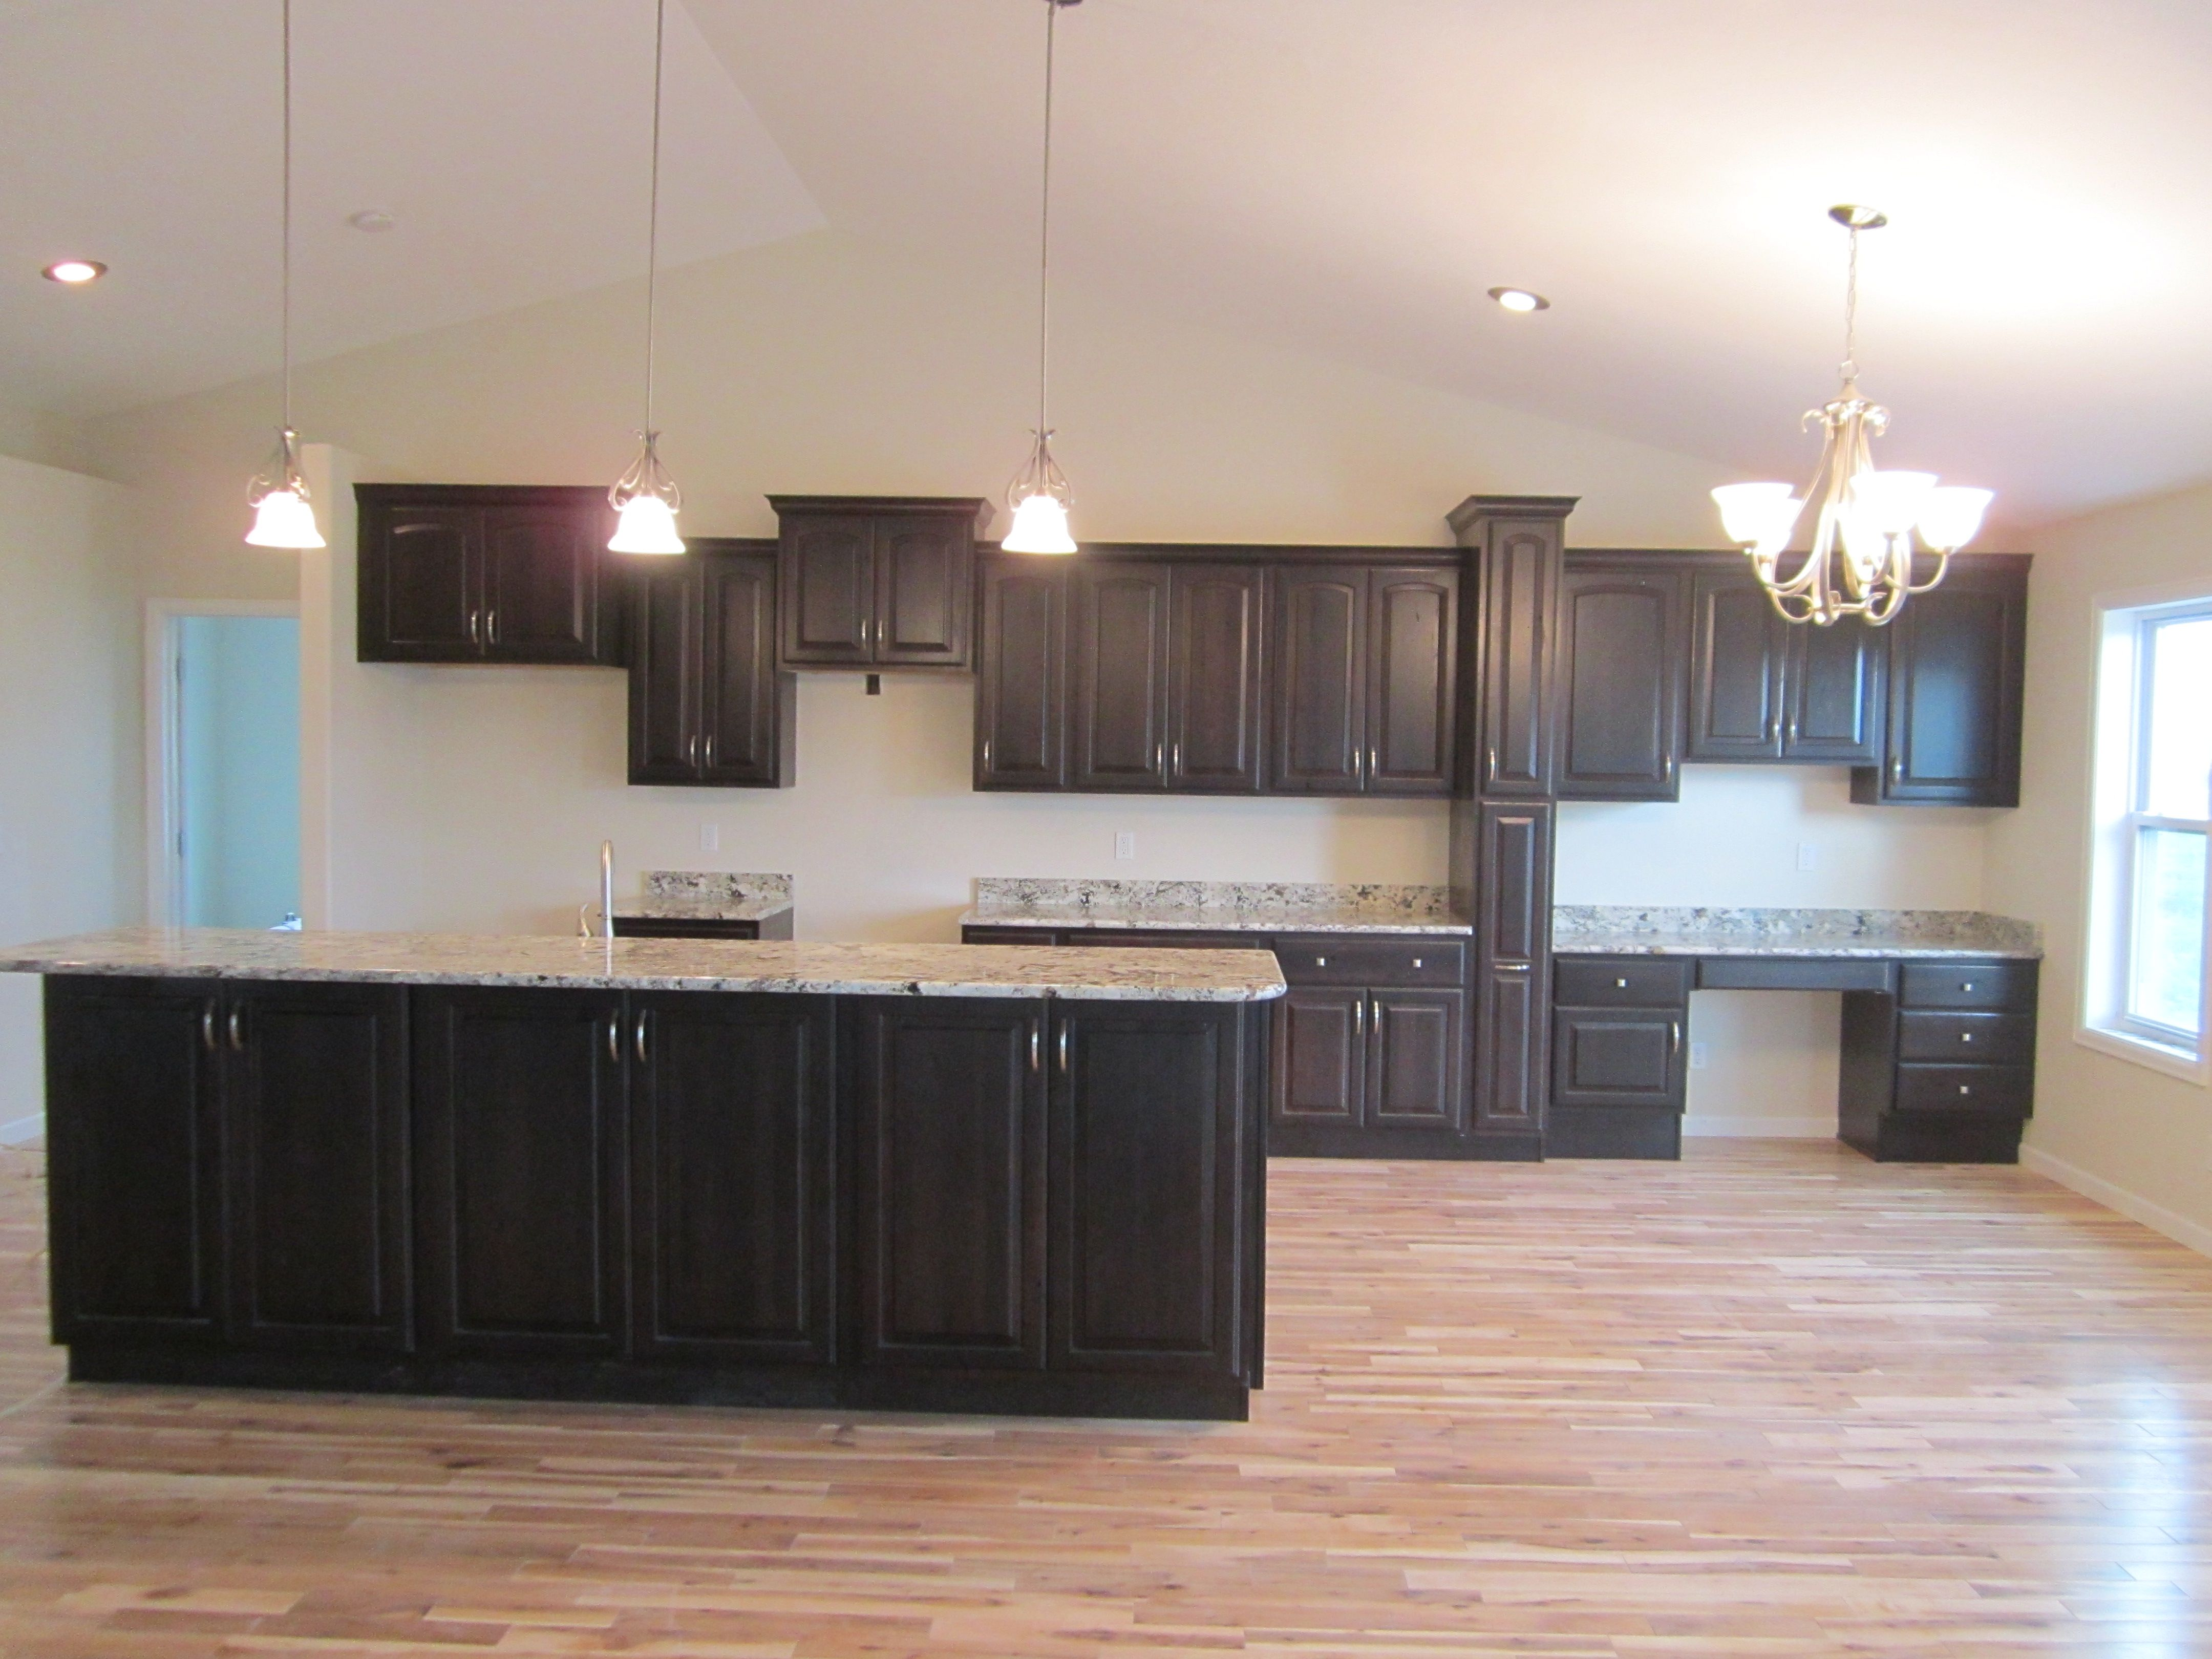 Karman Brand Rustic Hickory Cabinets Harvest Door Style With Java Stain Alaska White G Kitchen Colour Schemes White Granite Countertops Kitchen Remodel